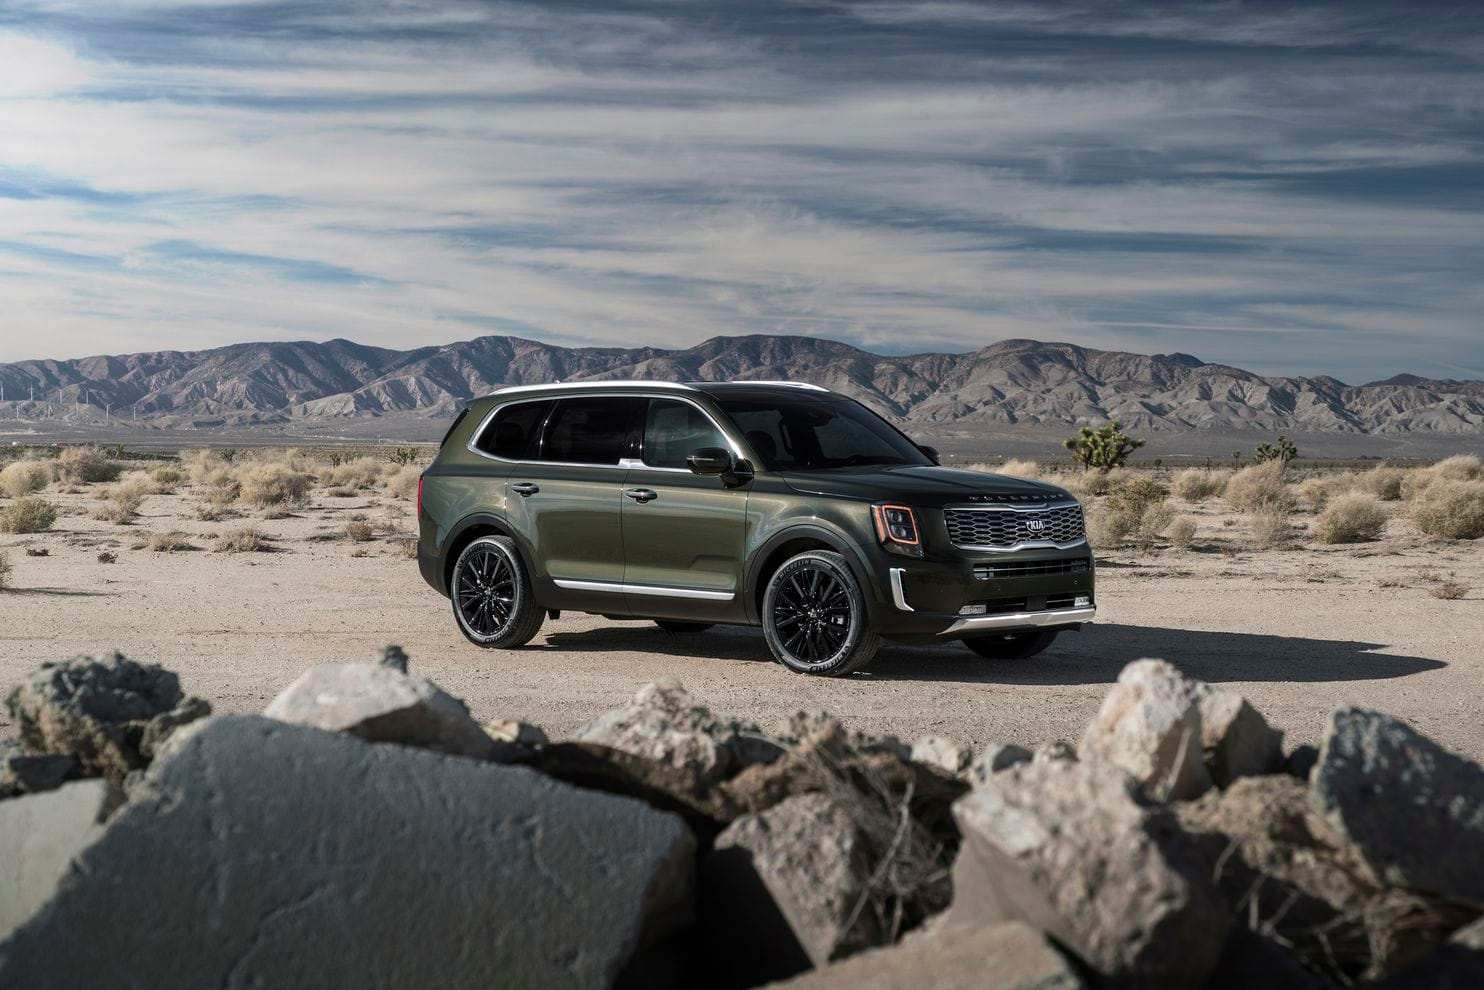 22 All New 2020 Kia Telluride Vs Honda Pilot Performance for 2020 Kia Telluride Vs Honda Pilot